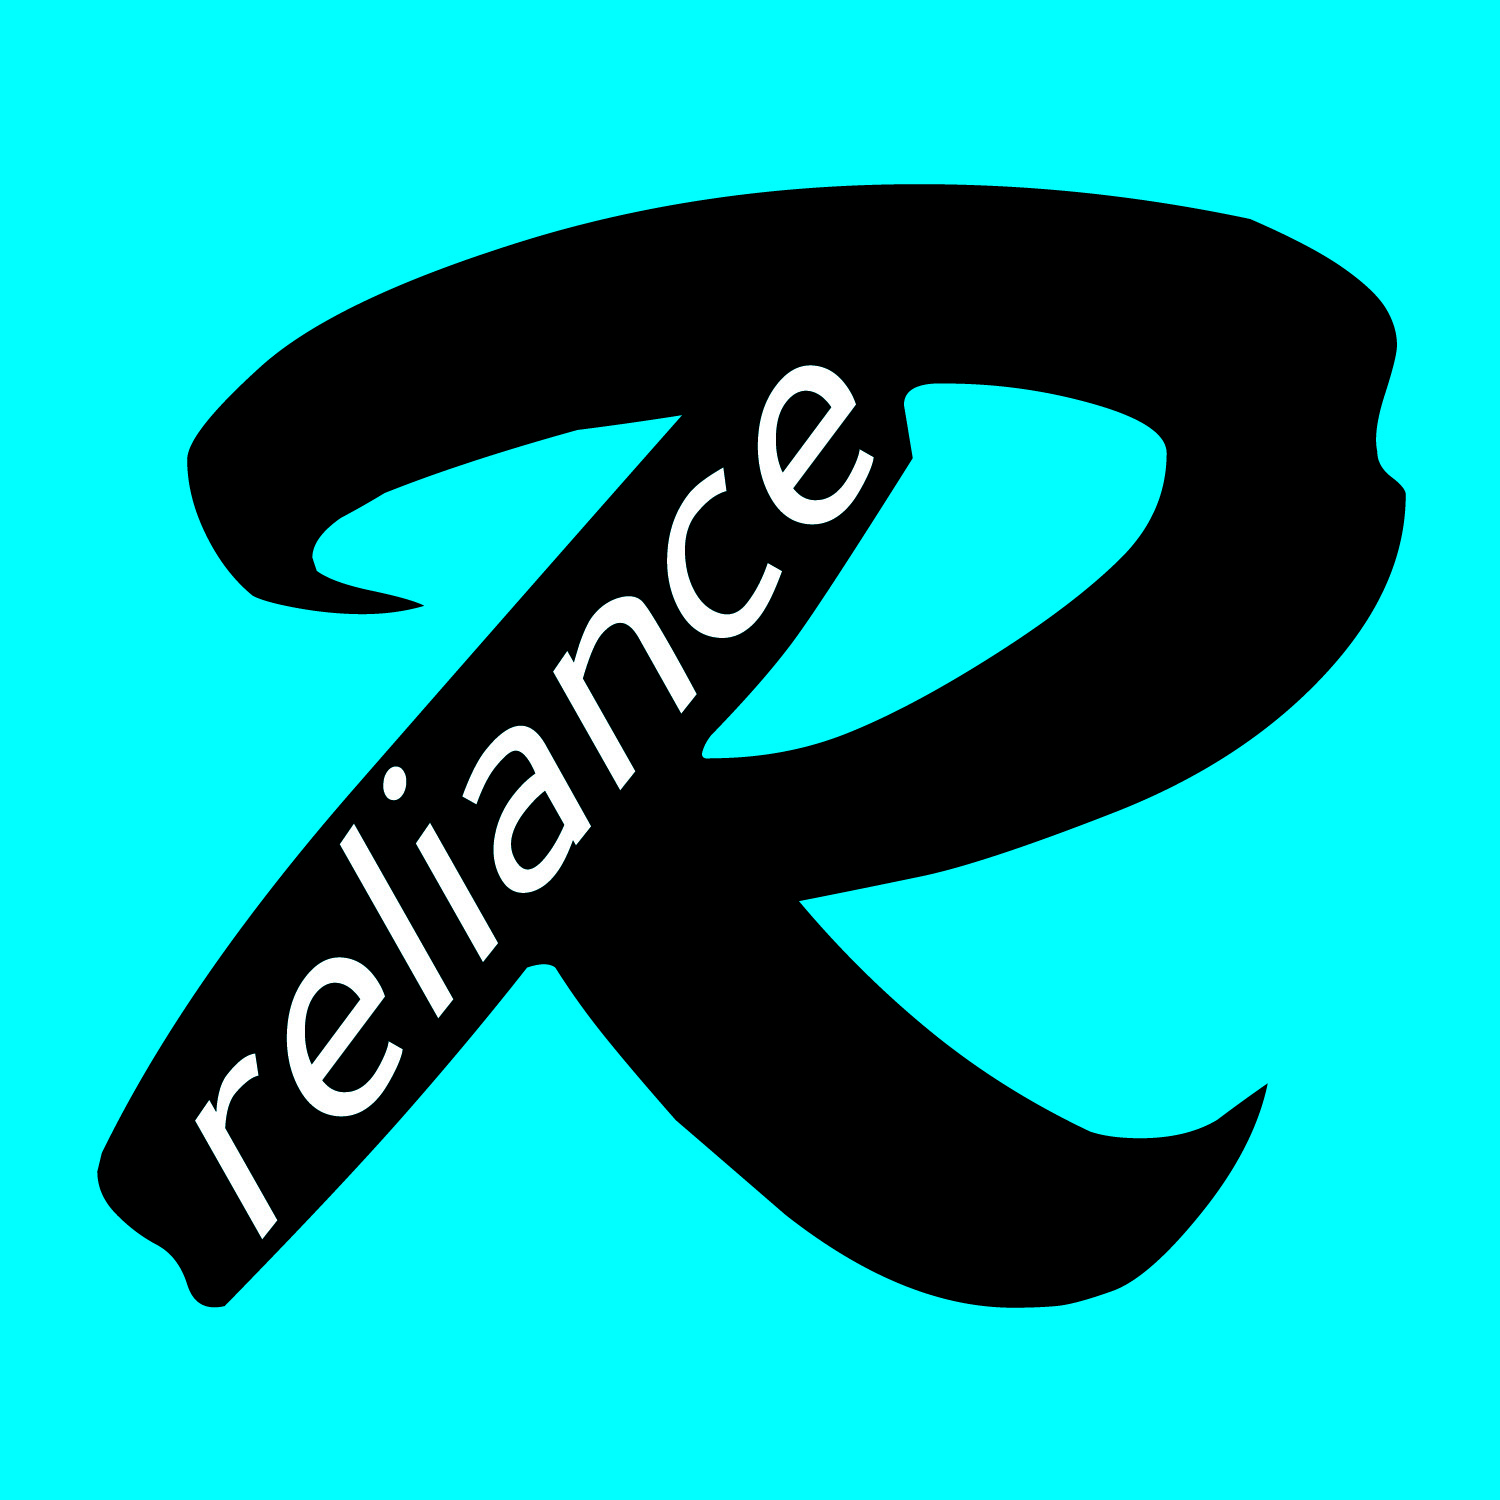 Reliance Logo CMYK jpg file. For use in print applications.   Download image